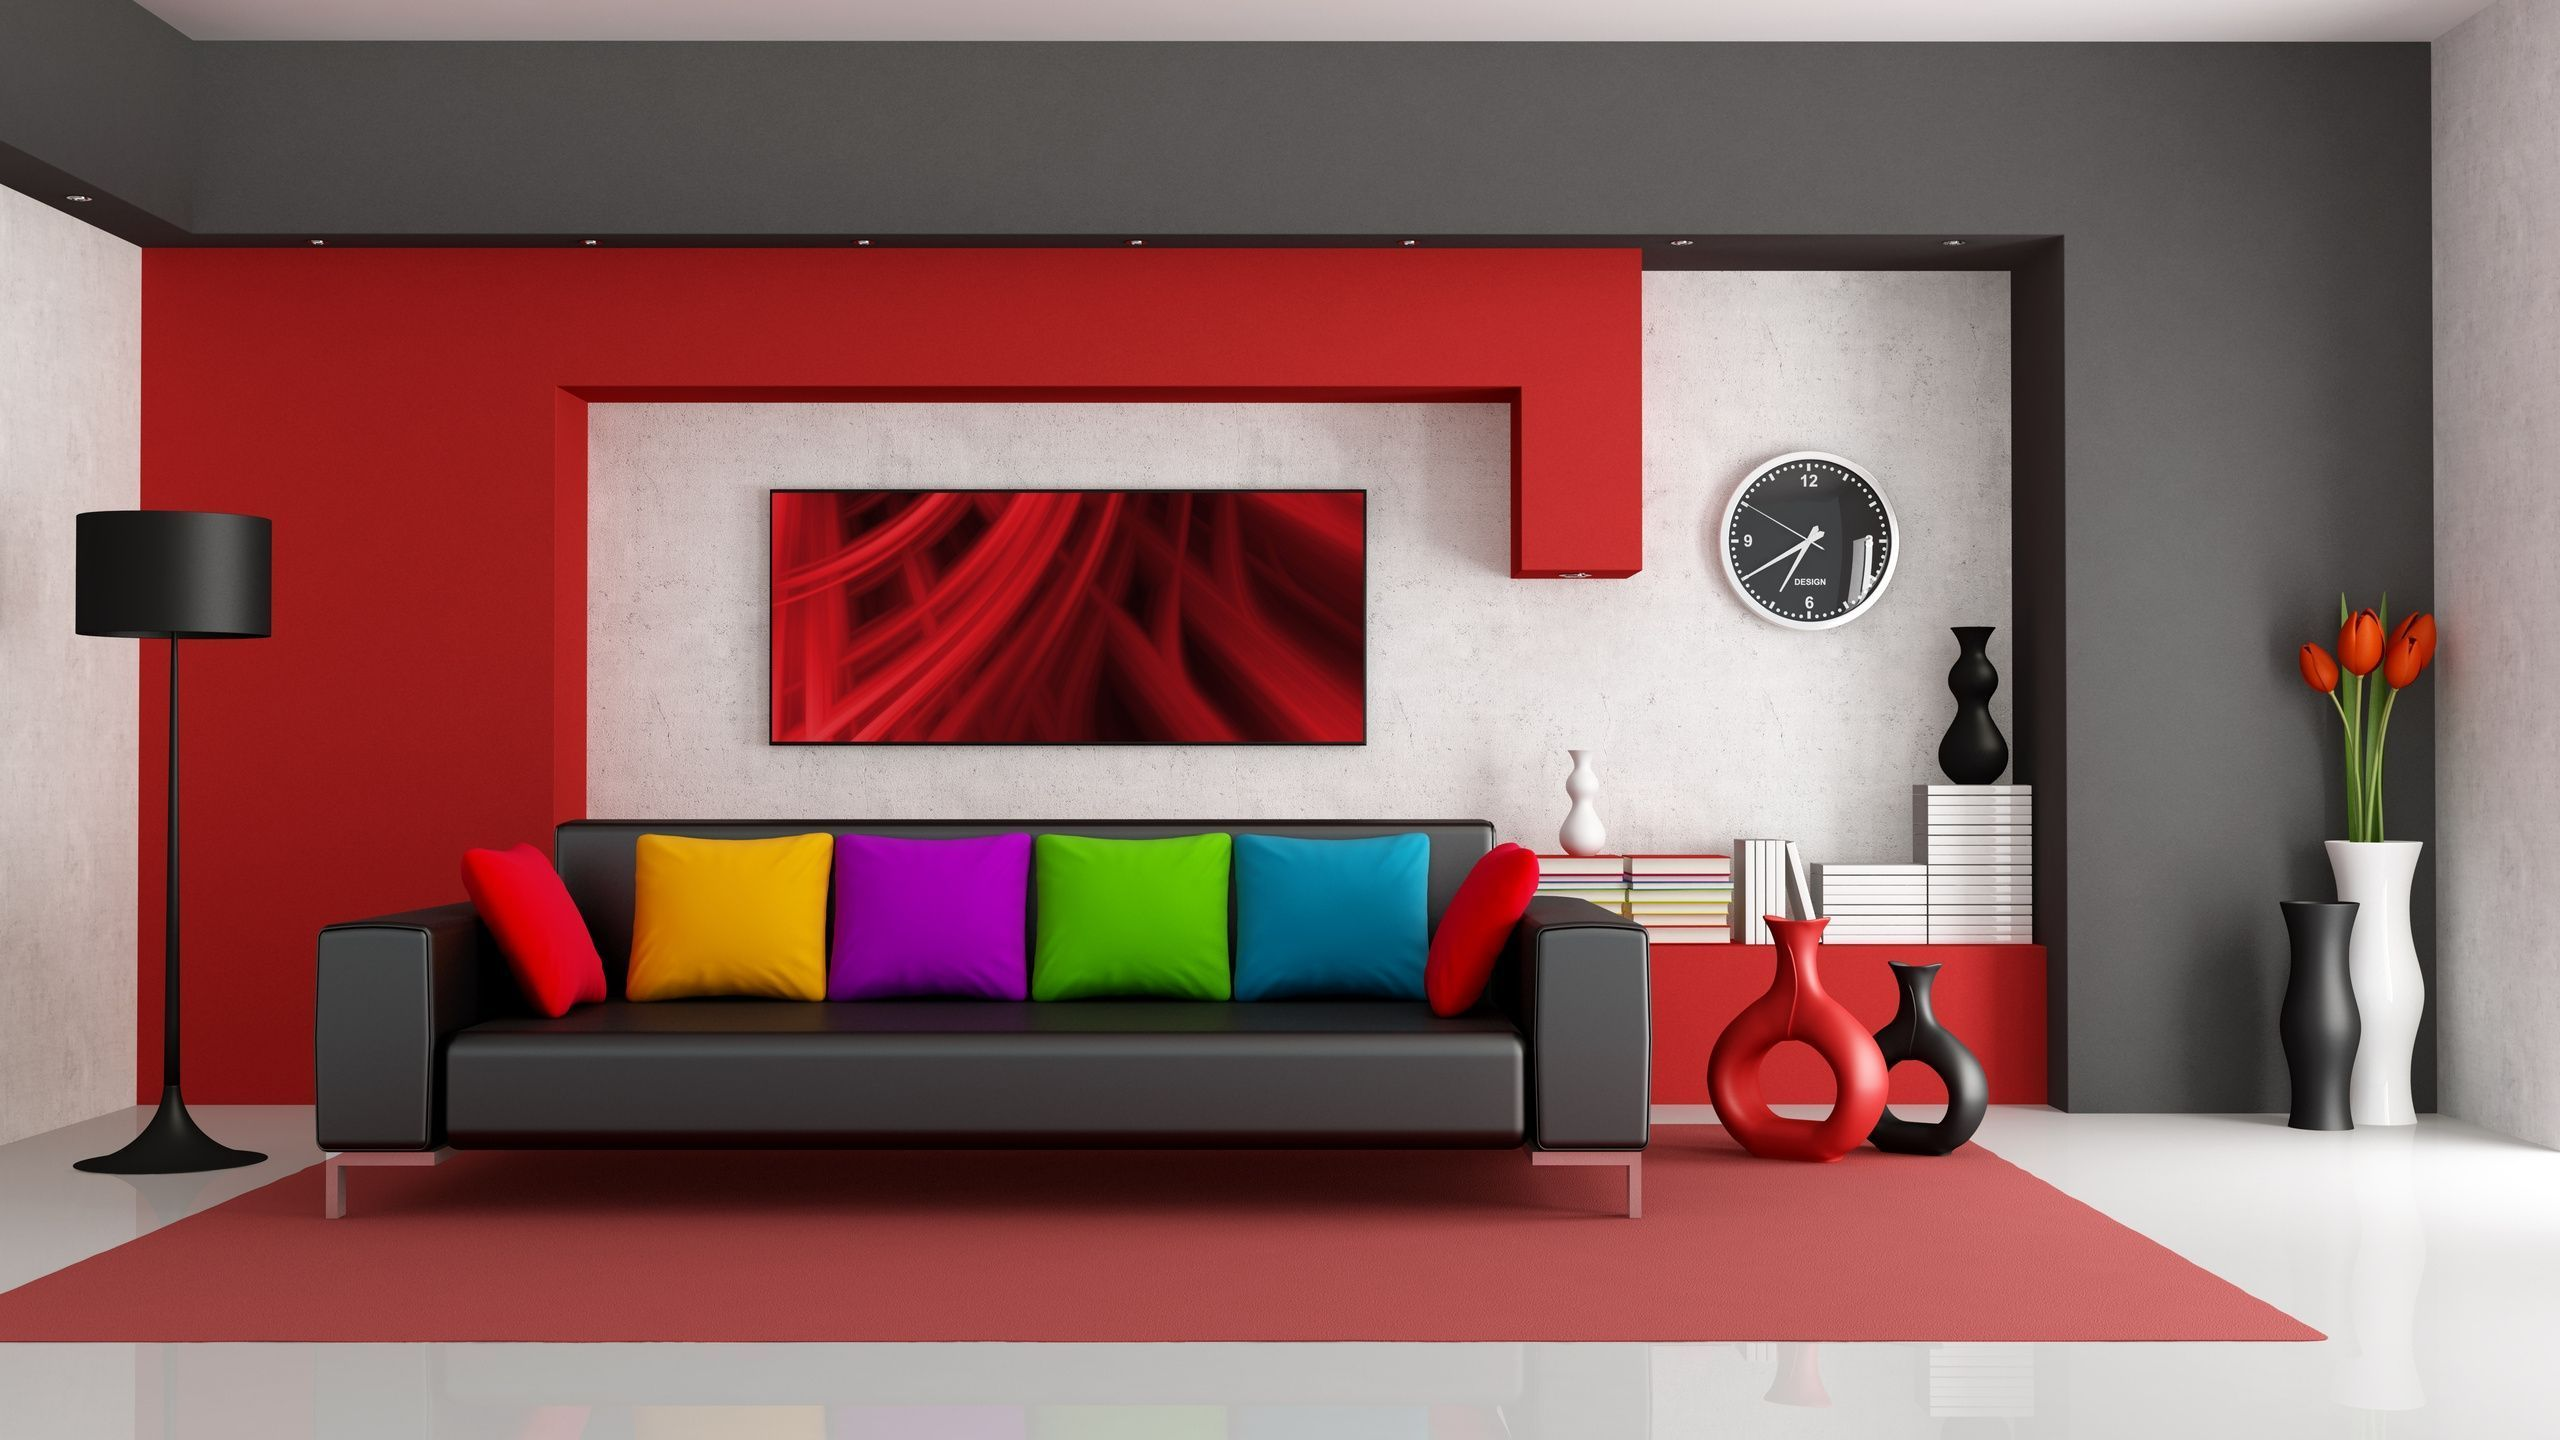 Maverick home decor ideas outstanding black and red living room furniture 2560 x 1440 ·